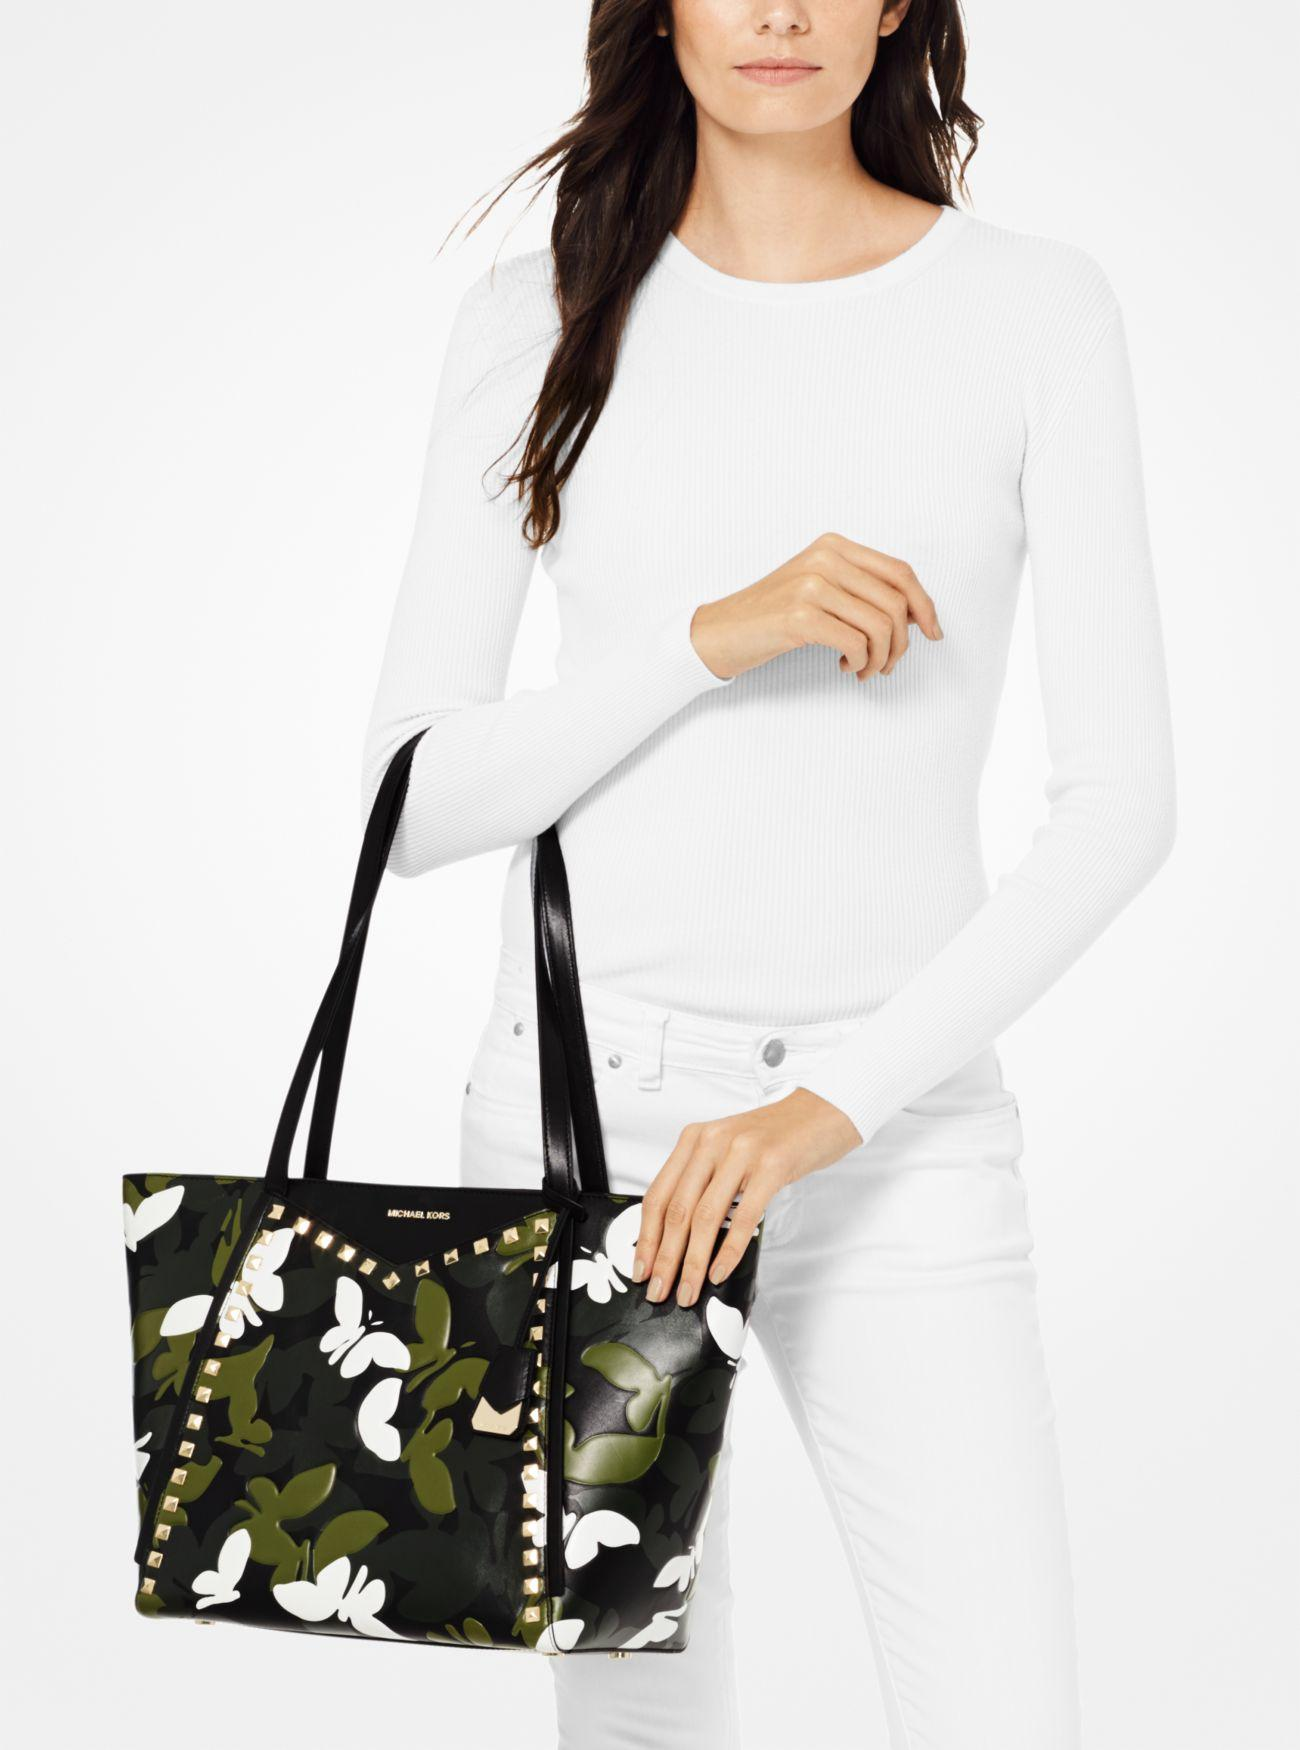 2990102acd945f Michael Kors - Black Whitney Large Butterfly Camo Leather Tote Bag - Lyst.  View fullscreen